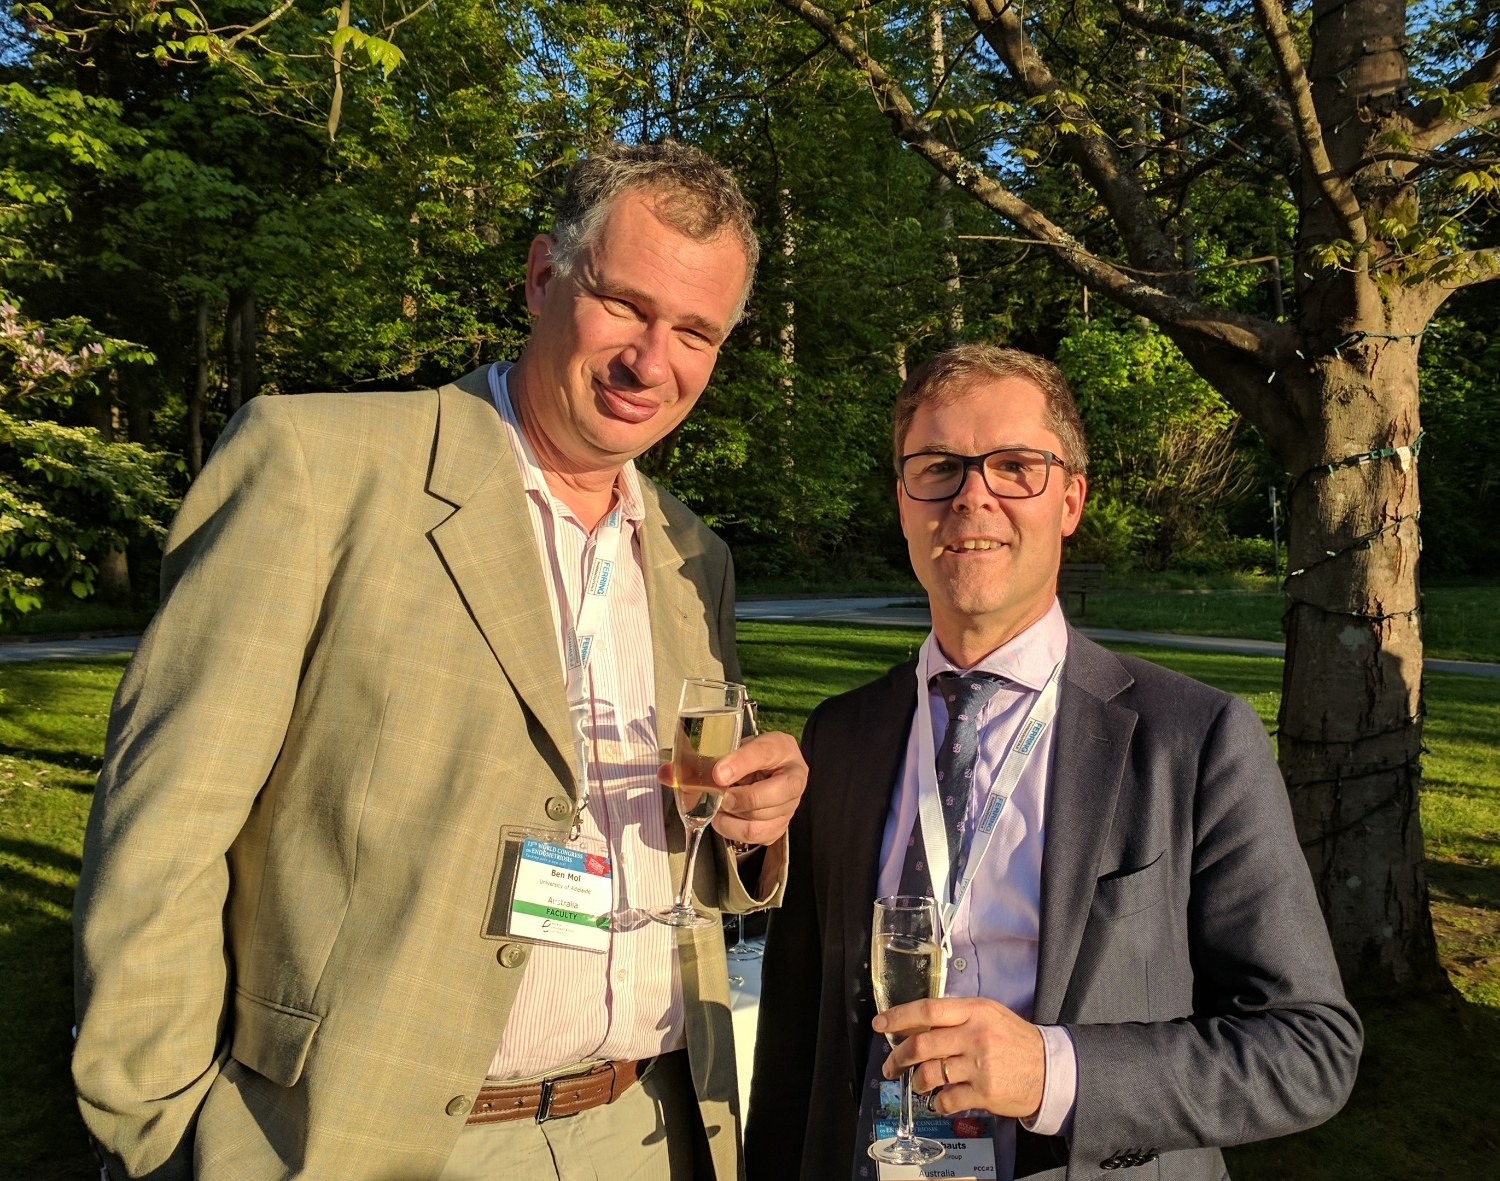 Professor Ben Mol and Professor Luk Rombauts at the World Congress of Endometriosis in Vancouver